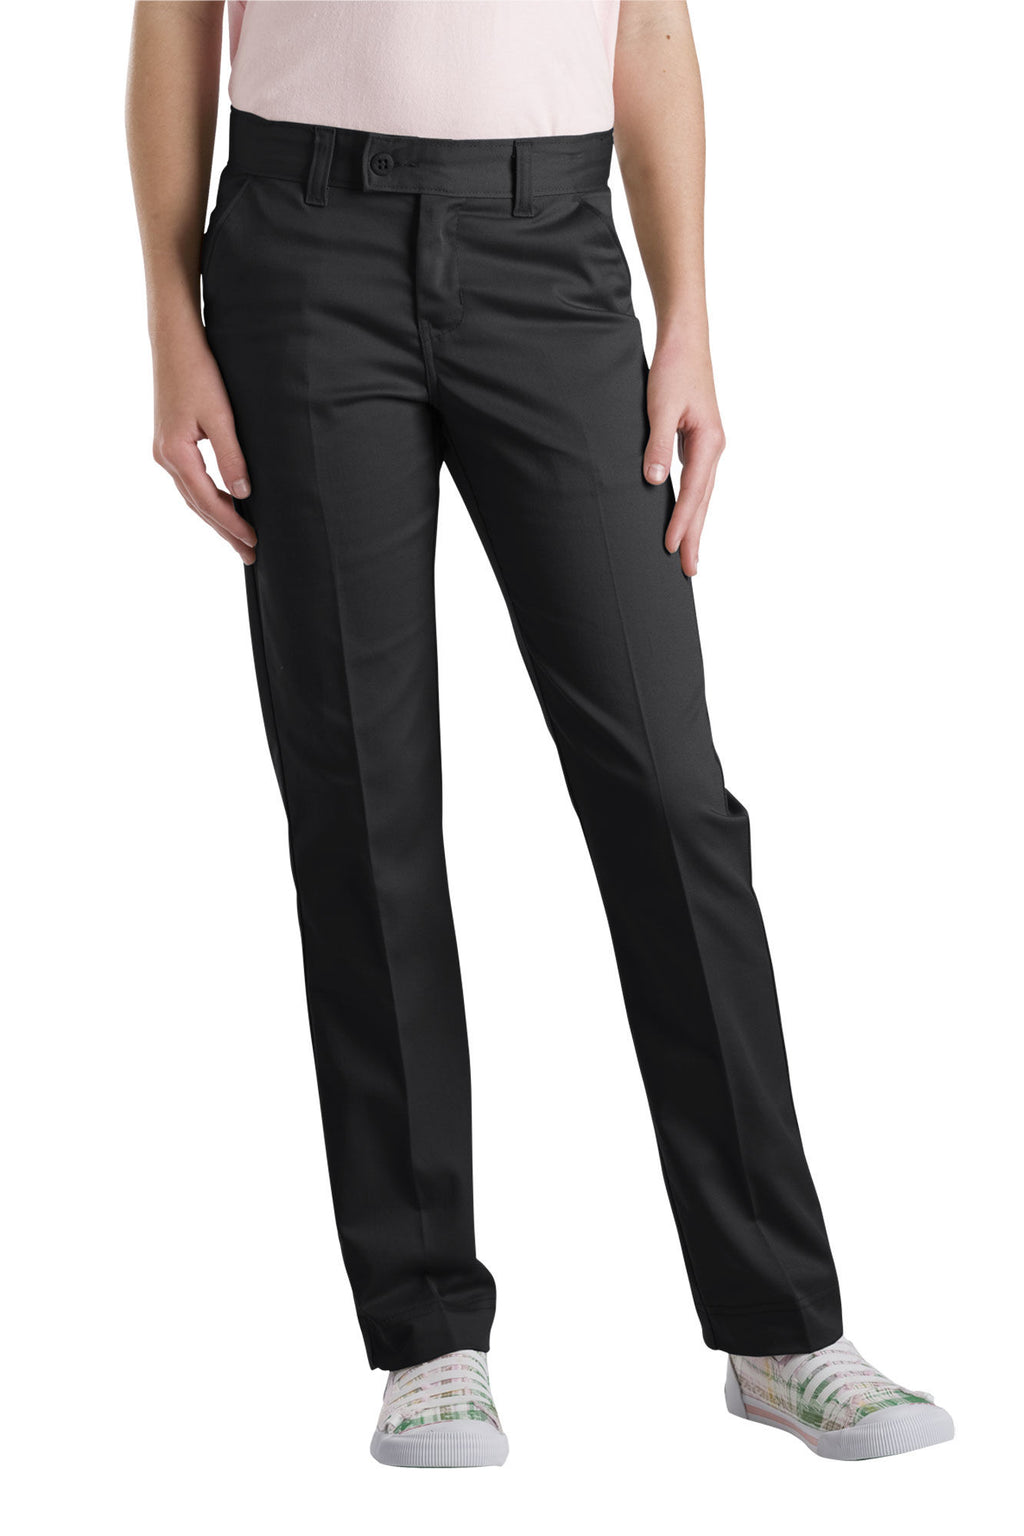 Dickies Girls Slim Fit Straight Leg Stretch Twill Pants, 7-20